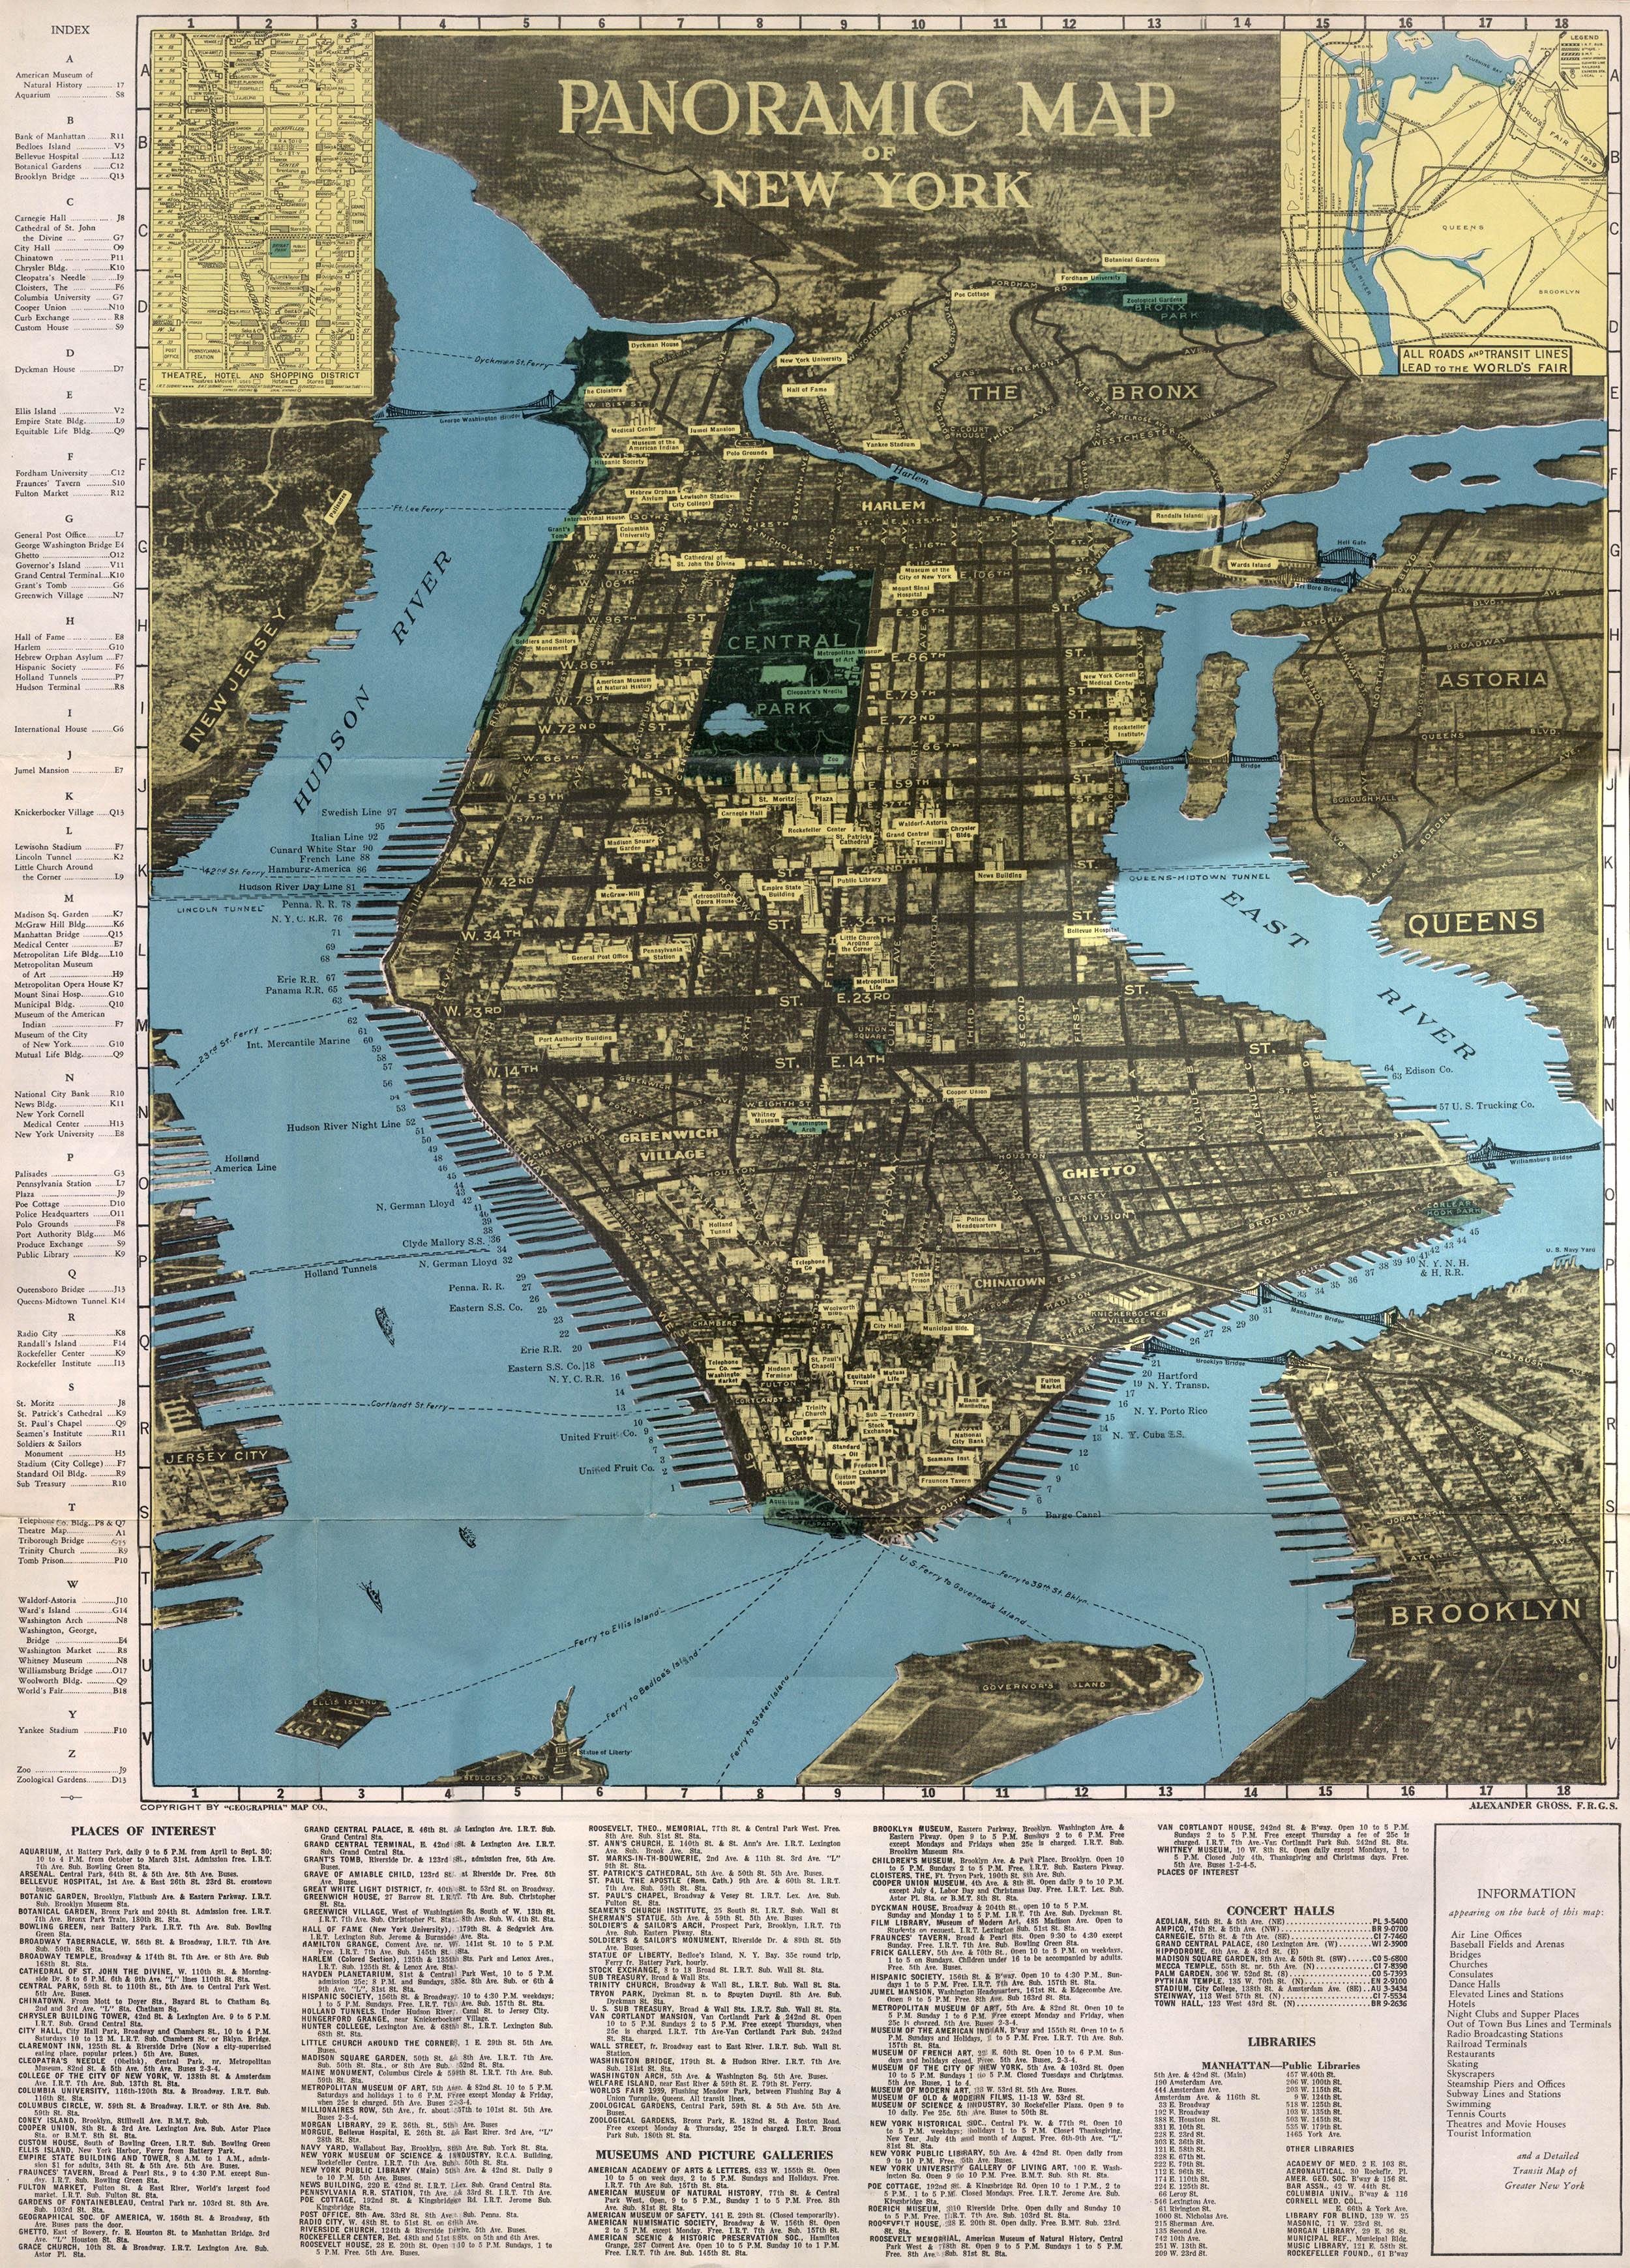 The Streets Of New York - Nyc map images